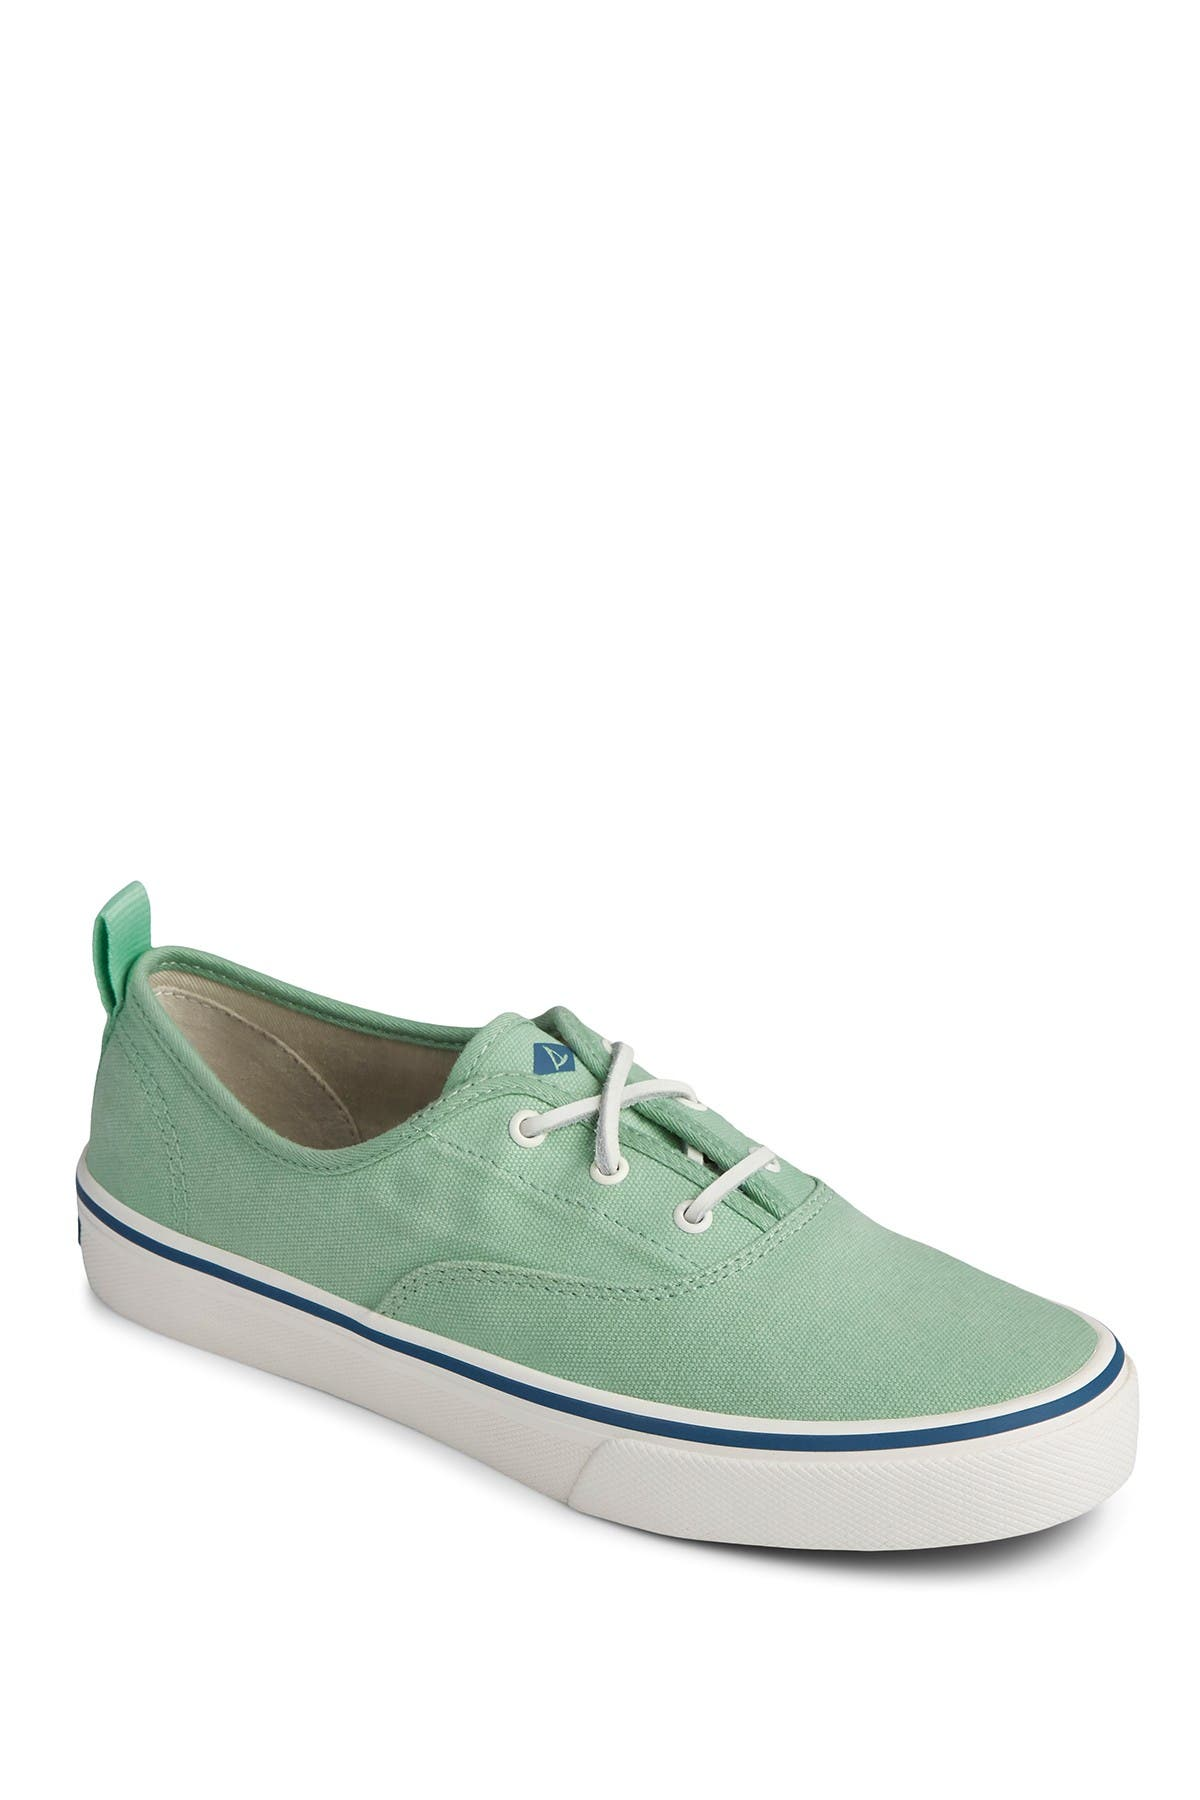 Image of Sperry Crest Canvas Sneaker